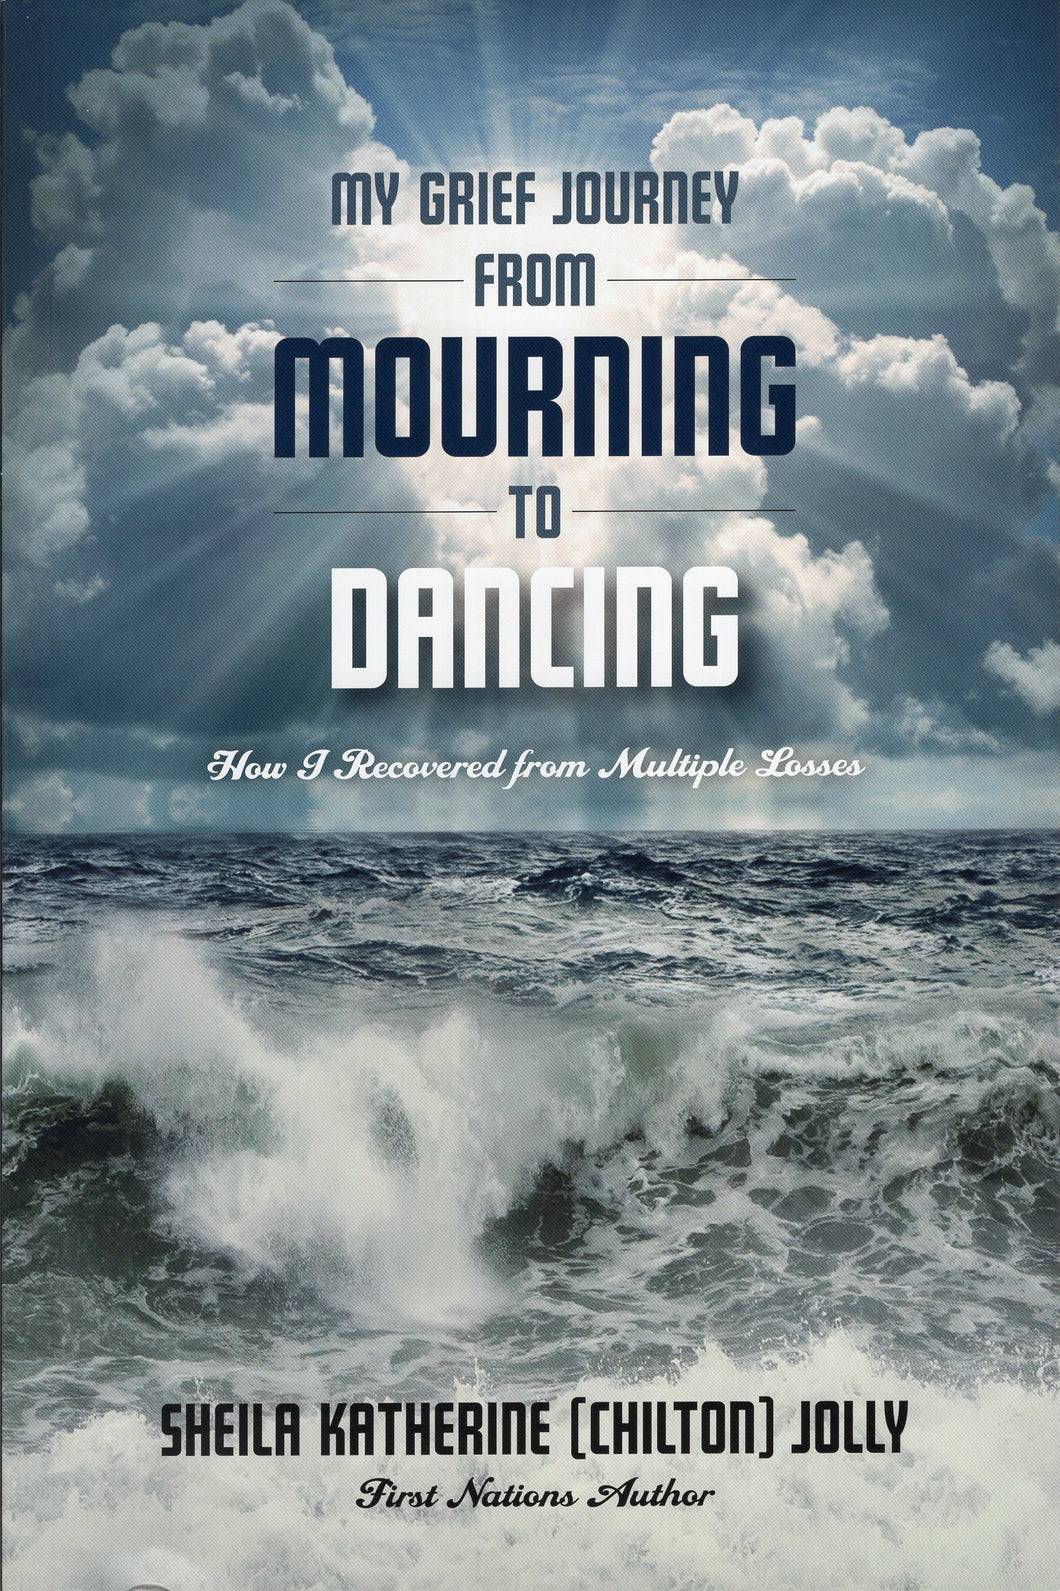 My Grief Journey From Mourning to Dancing